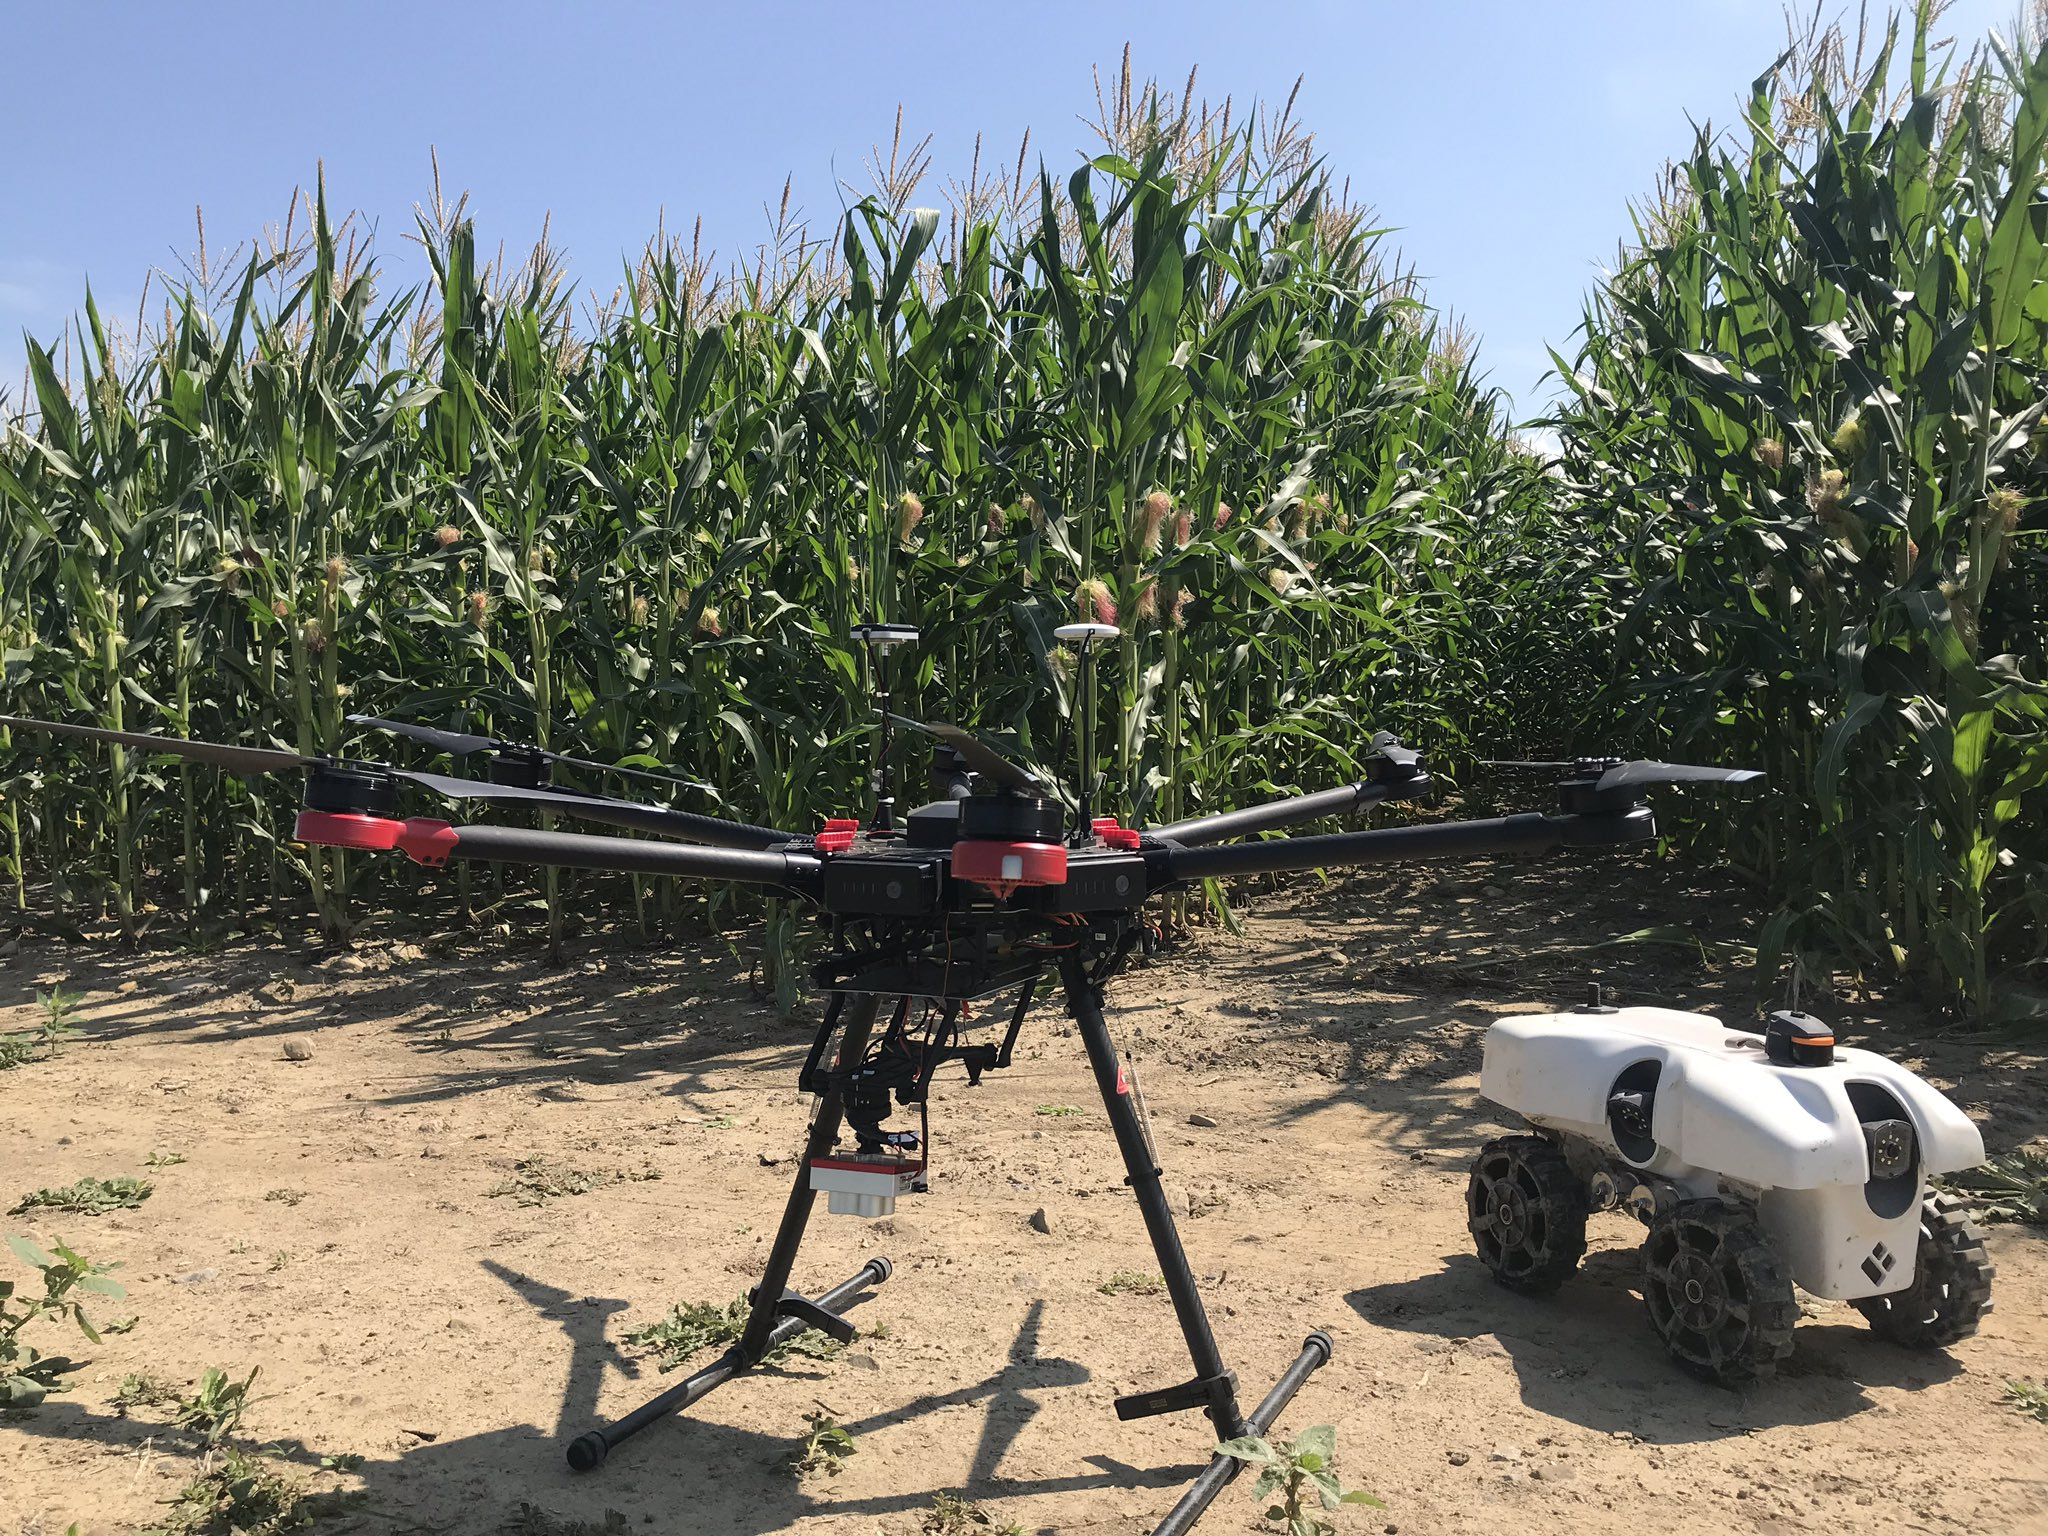 Local researchers using drones and rovers to increase resiliency in agriculture